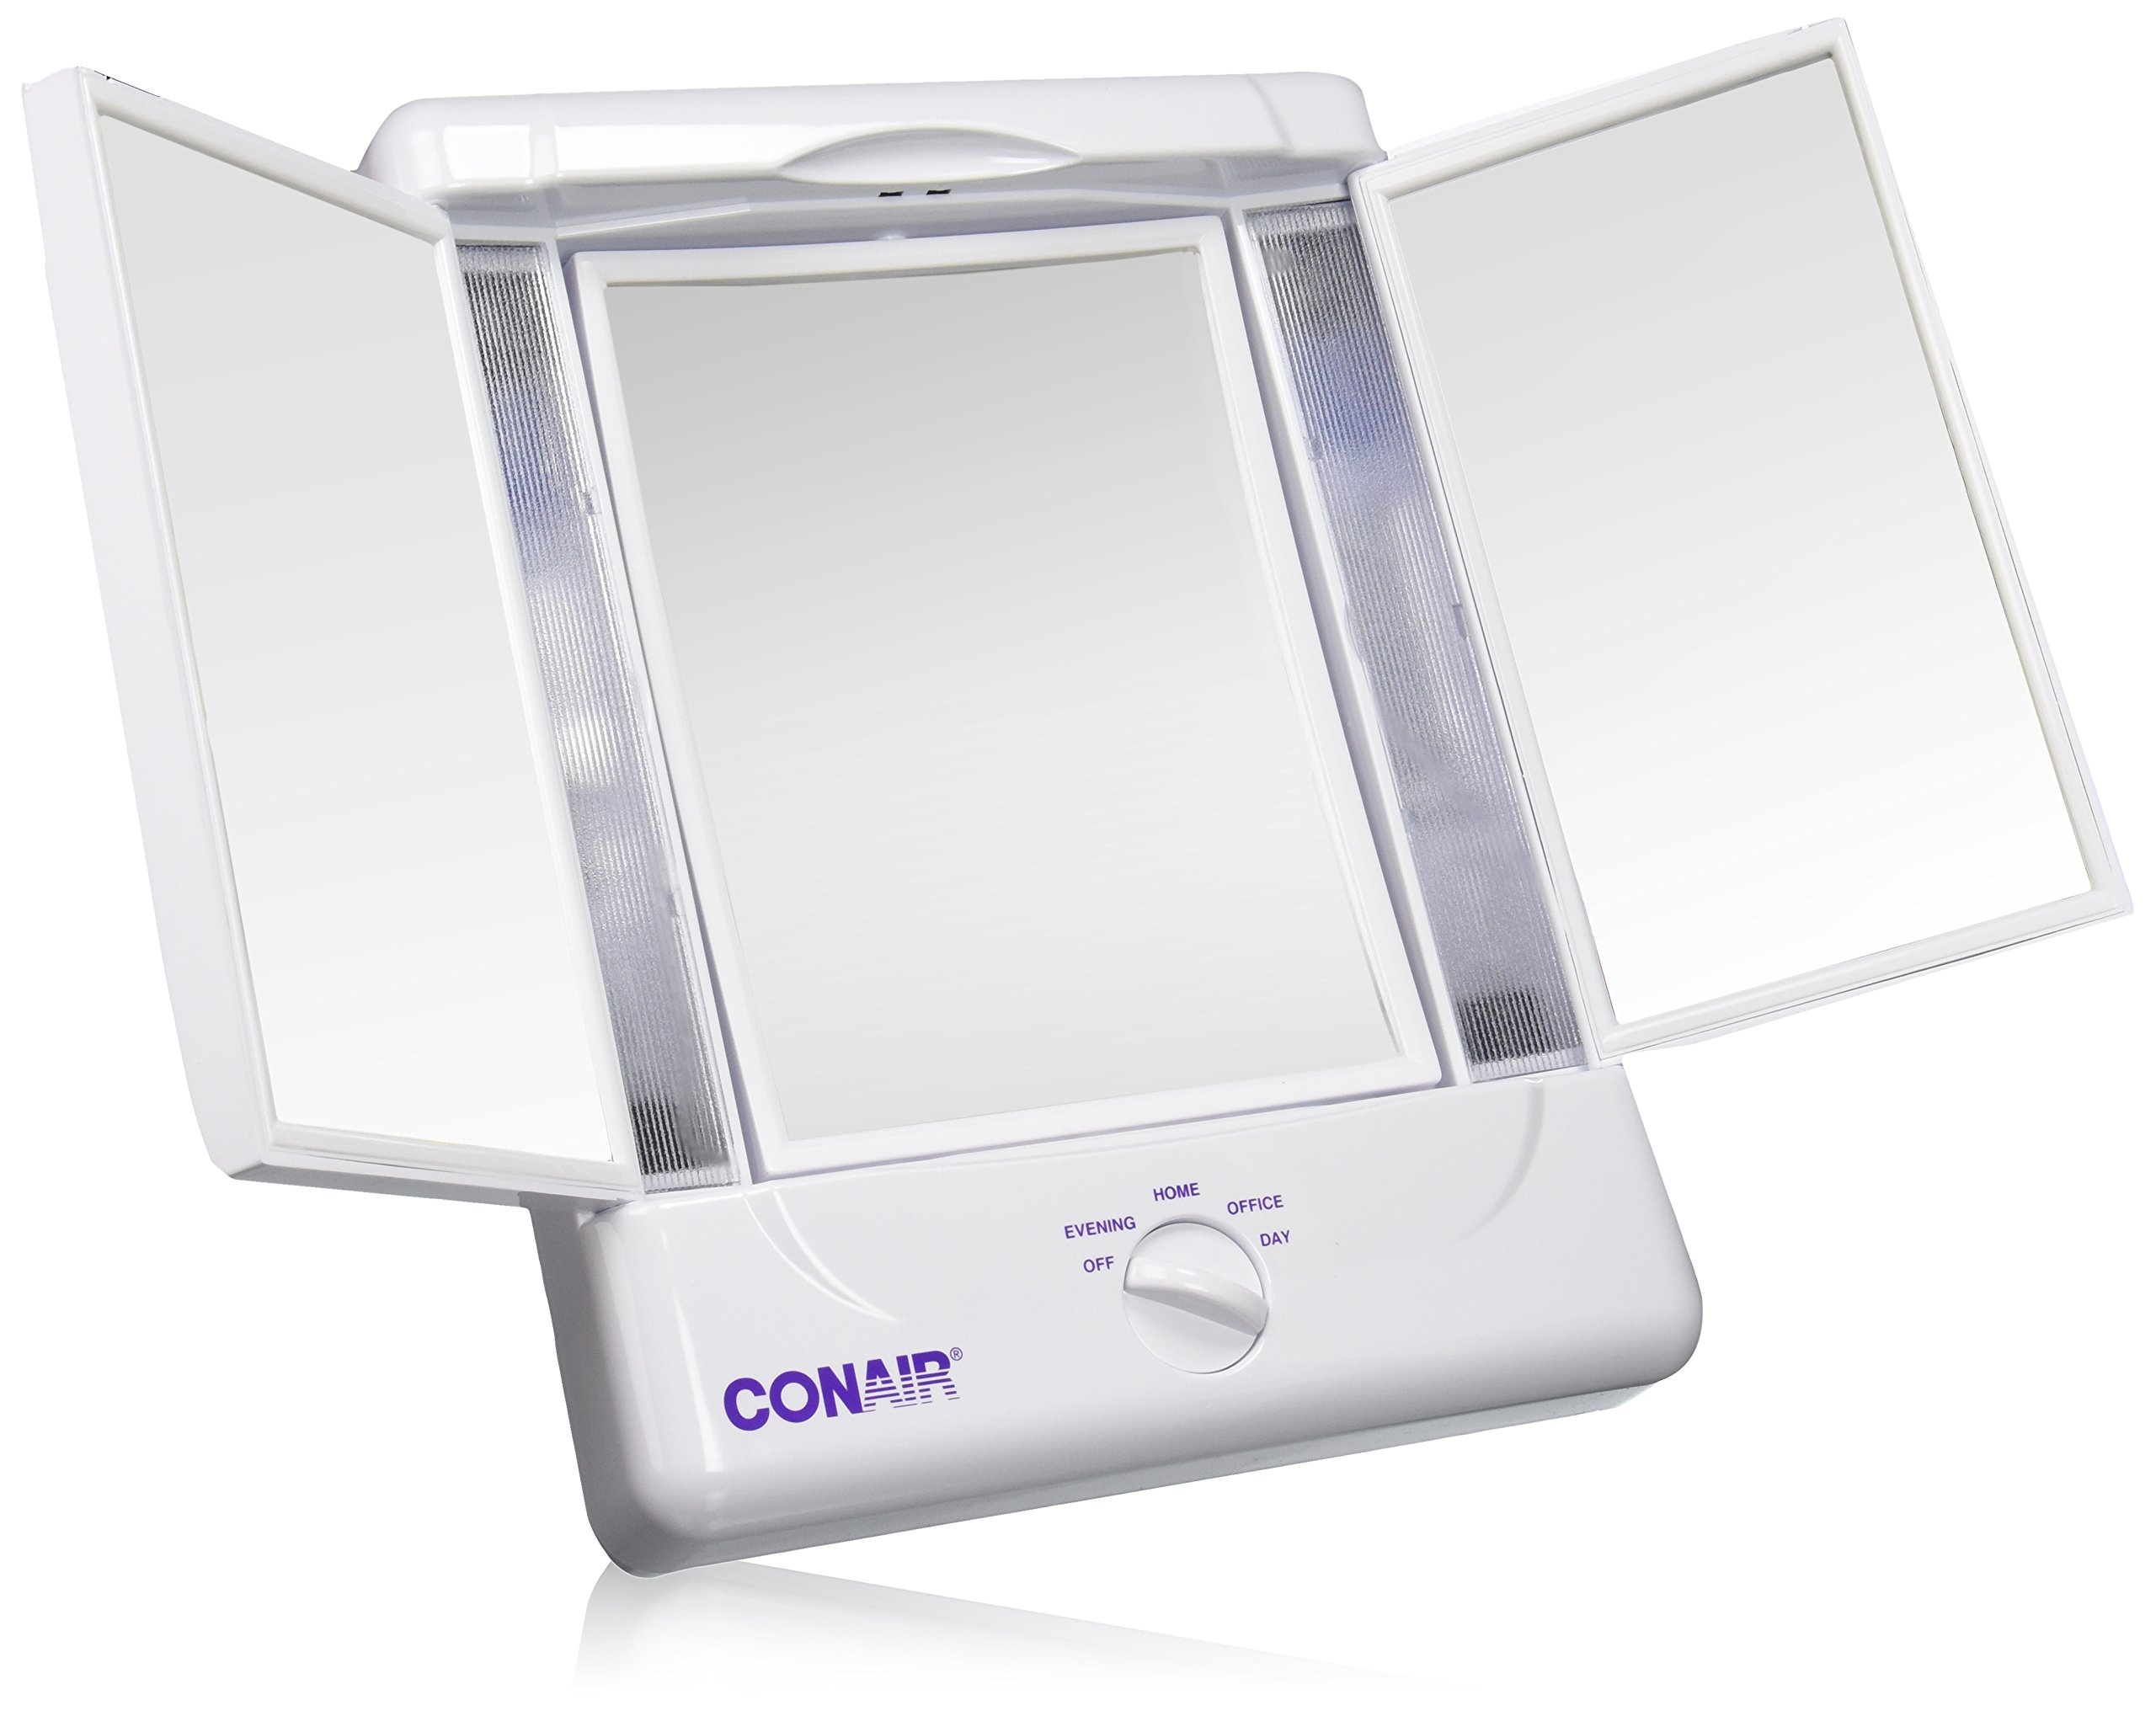 Breathtaking conair makeup mirror for furniture accessories ideas with conair double-sided lighted makeup mirror